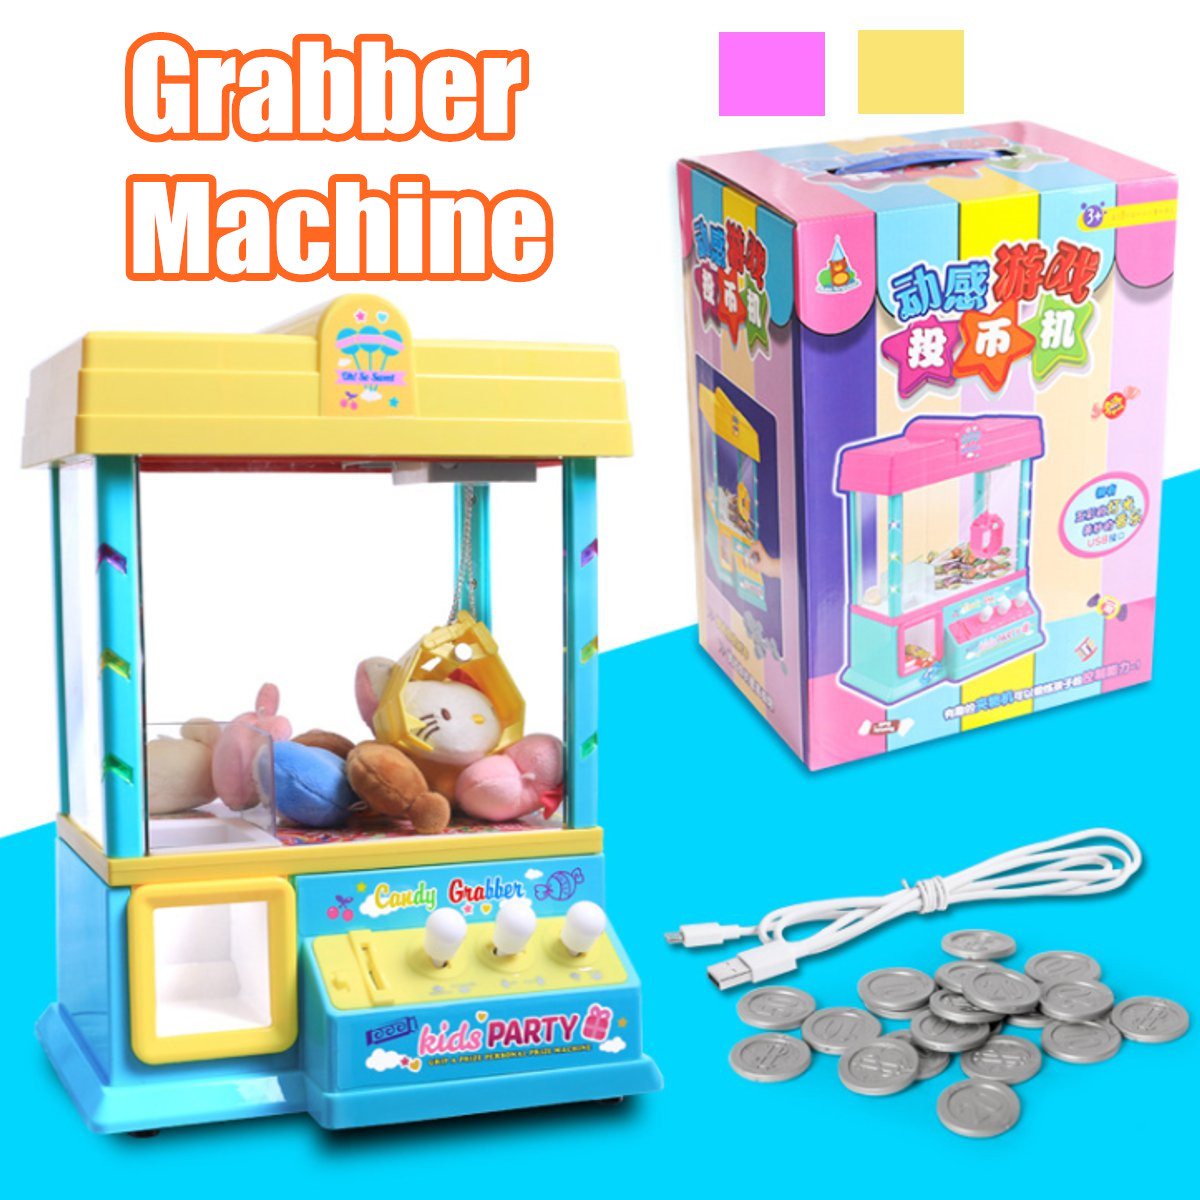 Power Tools Professional Sale Coin Operated Games Doll Machine Carnival Style Vending Arcade Claw Candy Doll Prize Game Kid Toy Birthday Gift